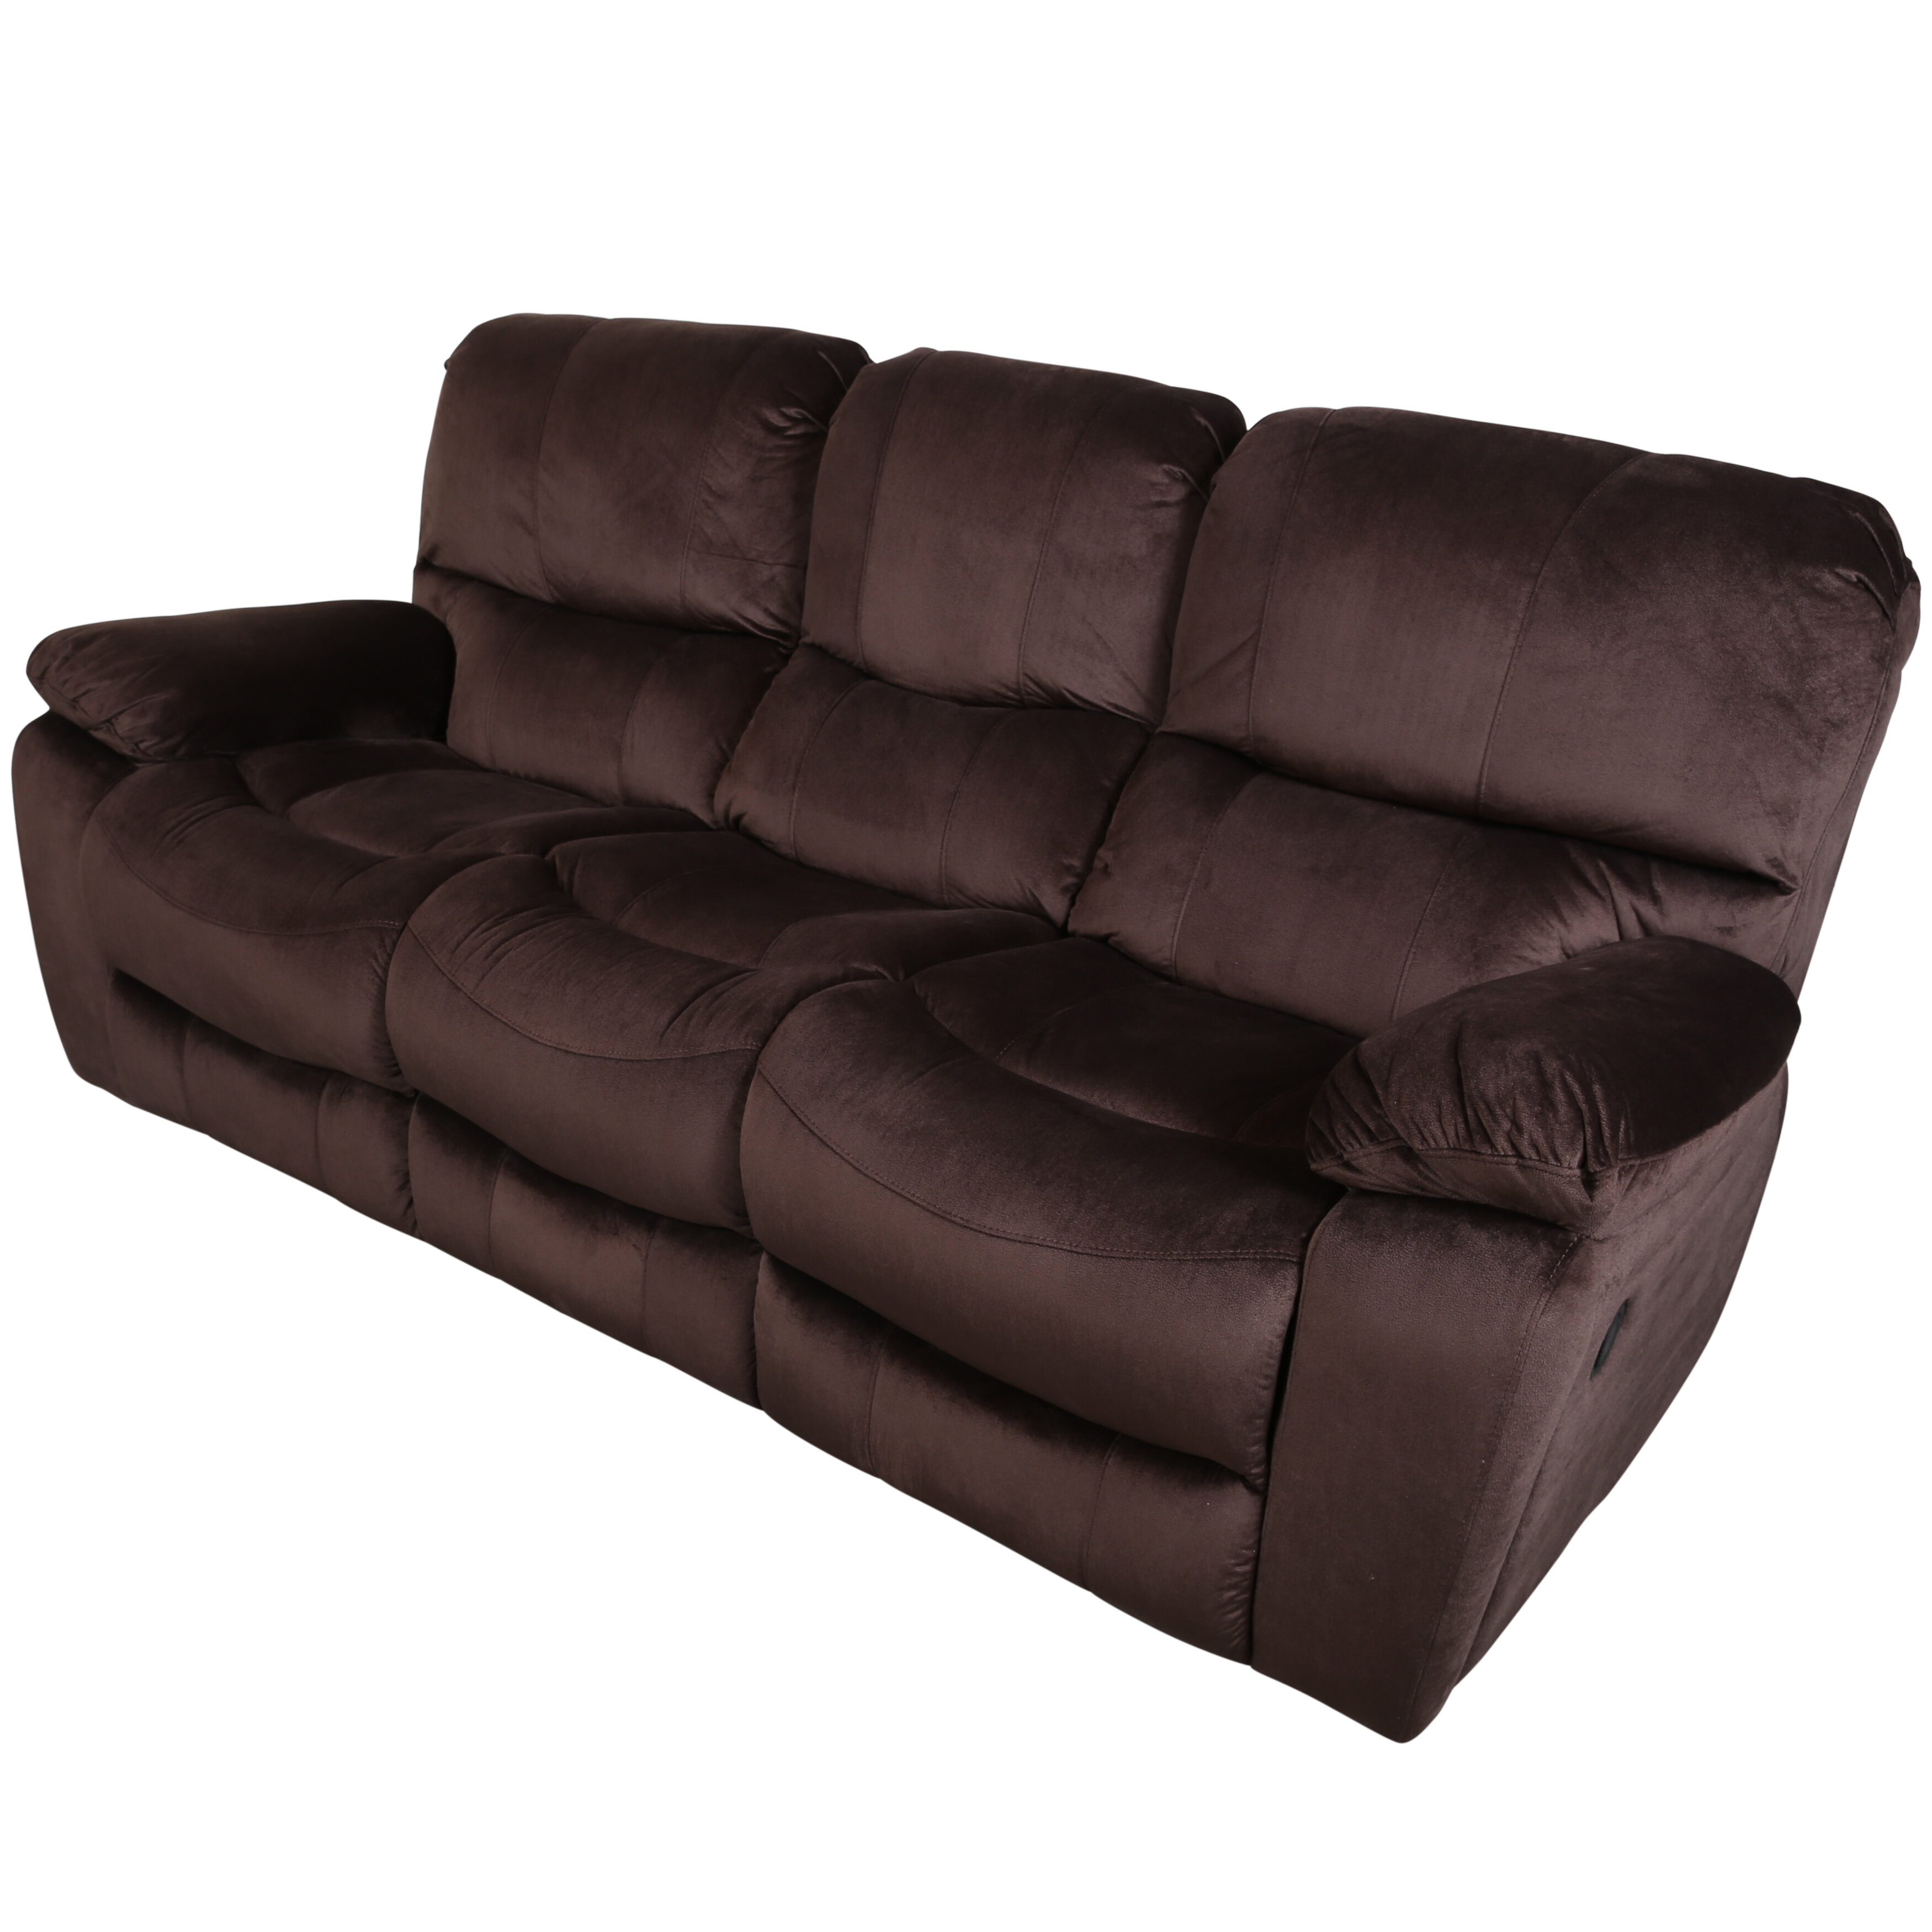 Rashida 3 Seats Reclining Sofa